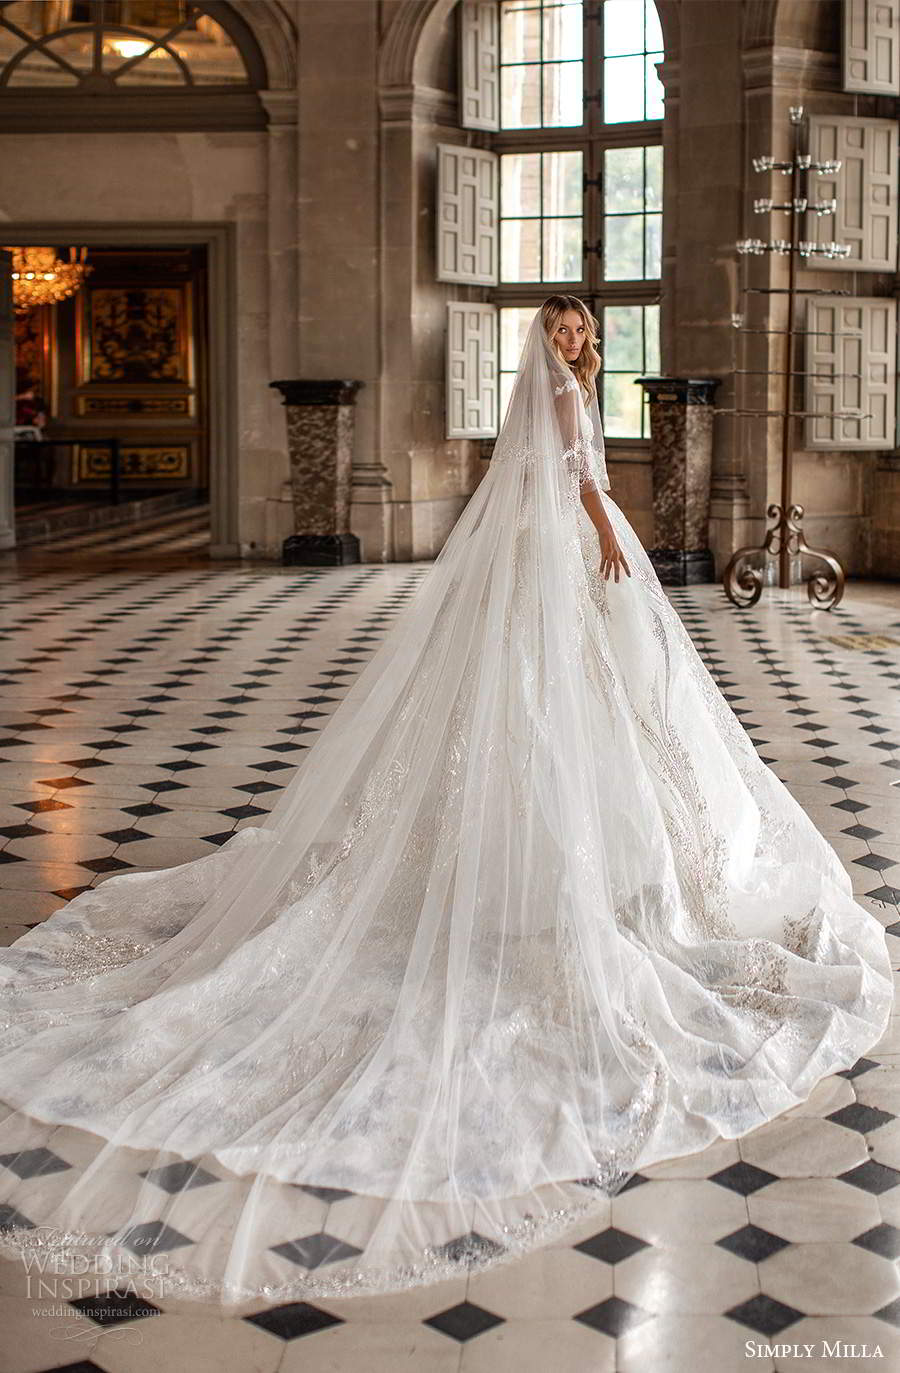 simply milla nova 2020 bridal sheer cap sleeves bateau neckline heavily embellished a line ball gown wedding dress cathedral train (13) bv